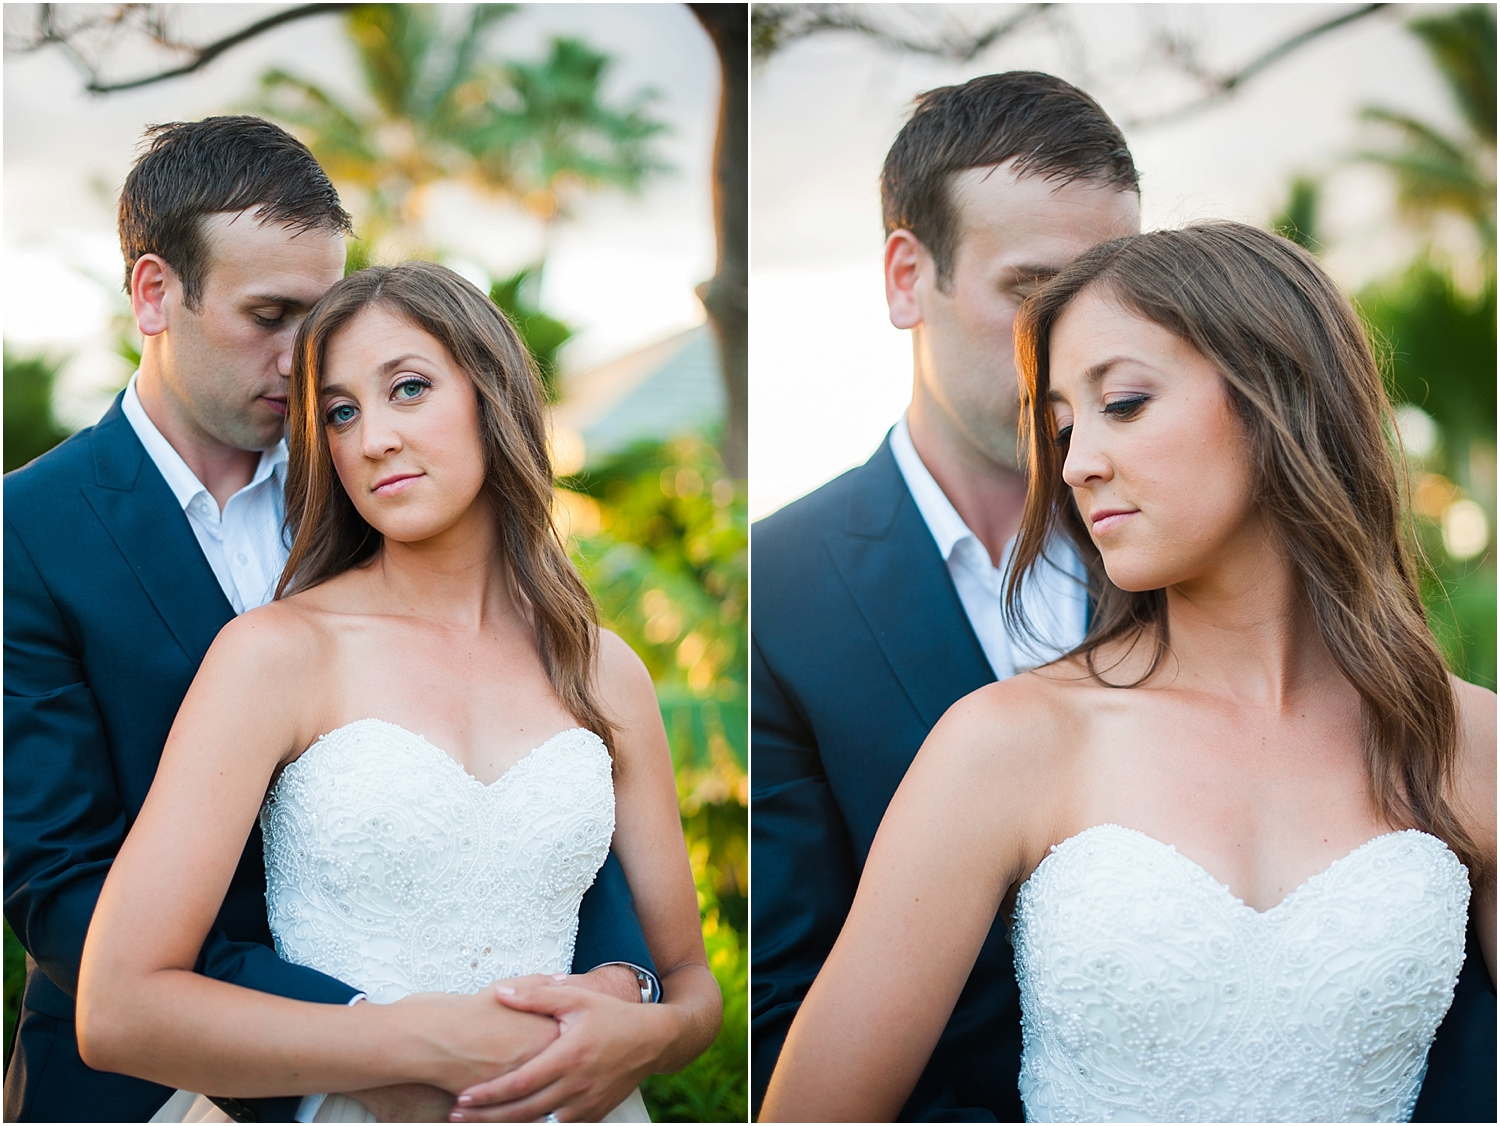 Elegant Maui Destination Wedding at Hotel Wailea_0014.jpg